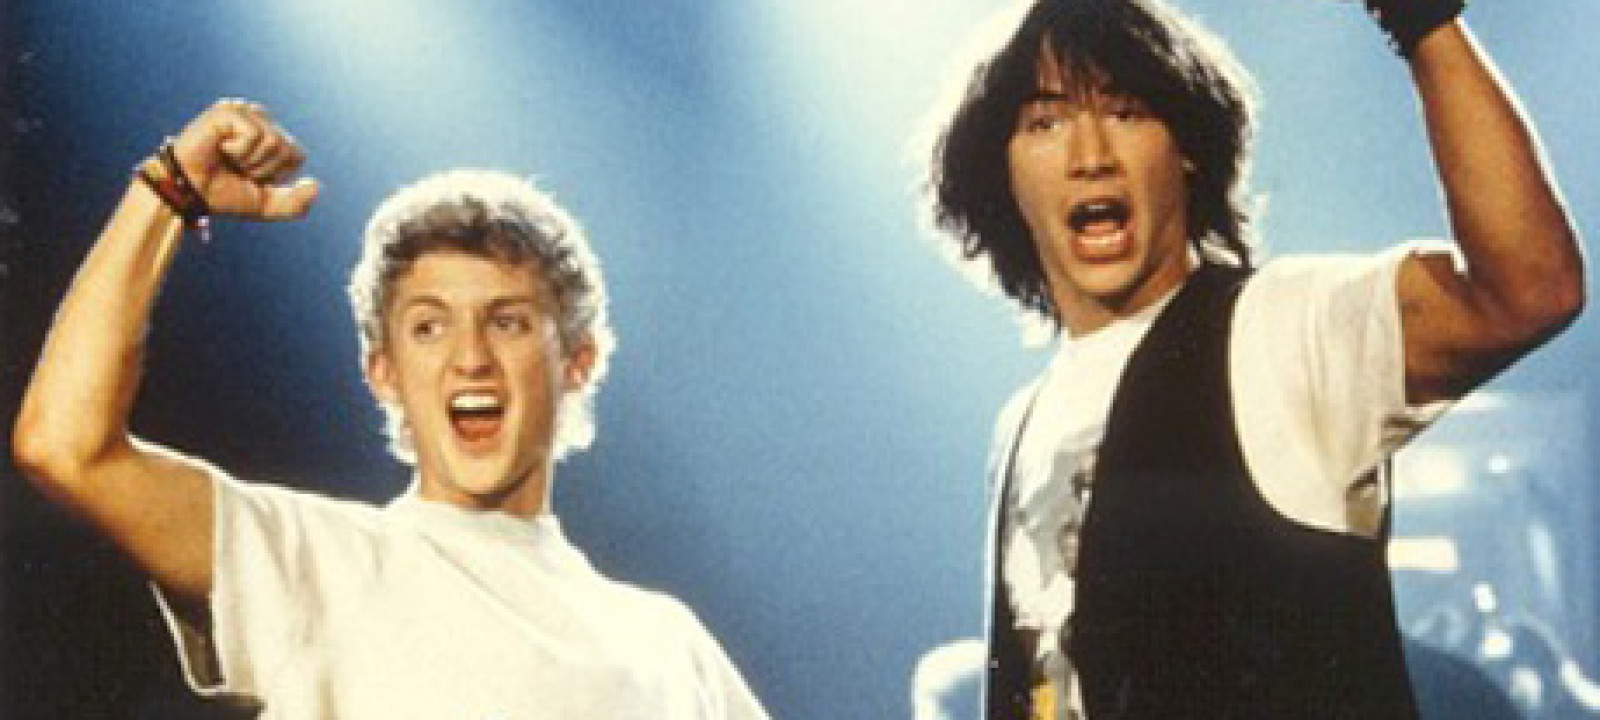 Bill and Ted: every bit as influential as their film said they were